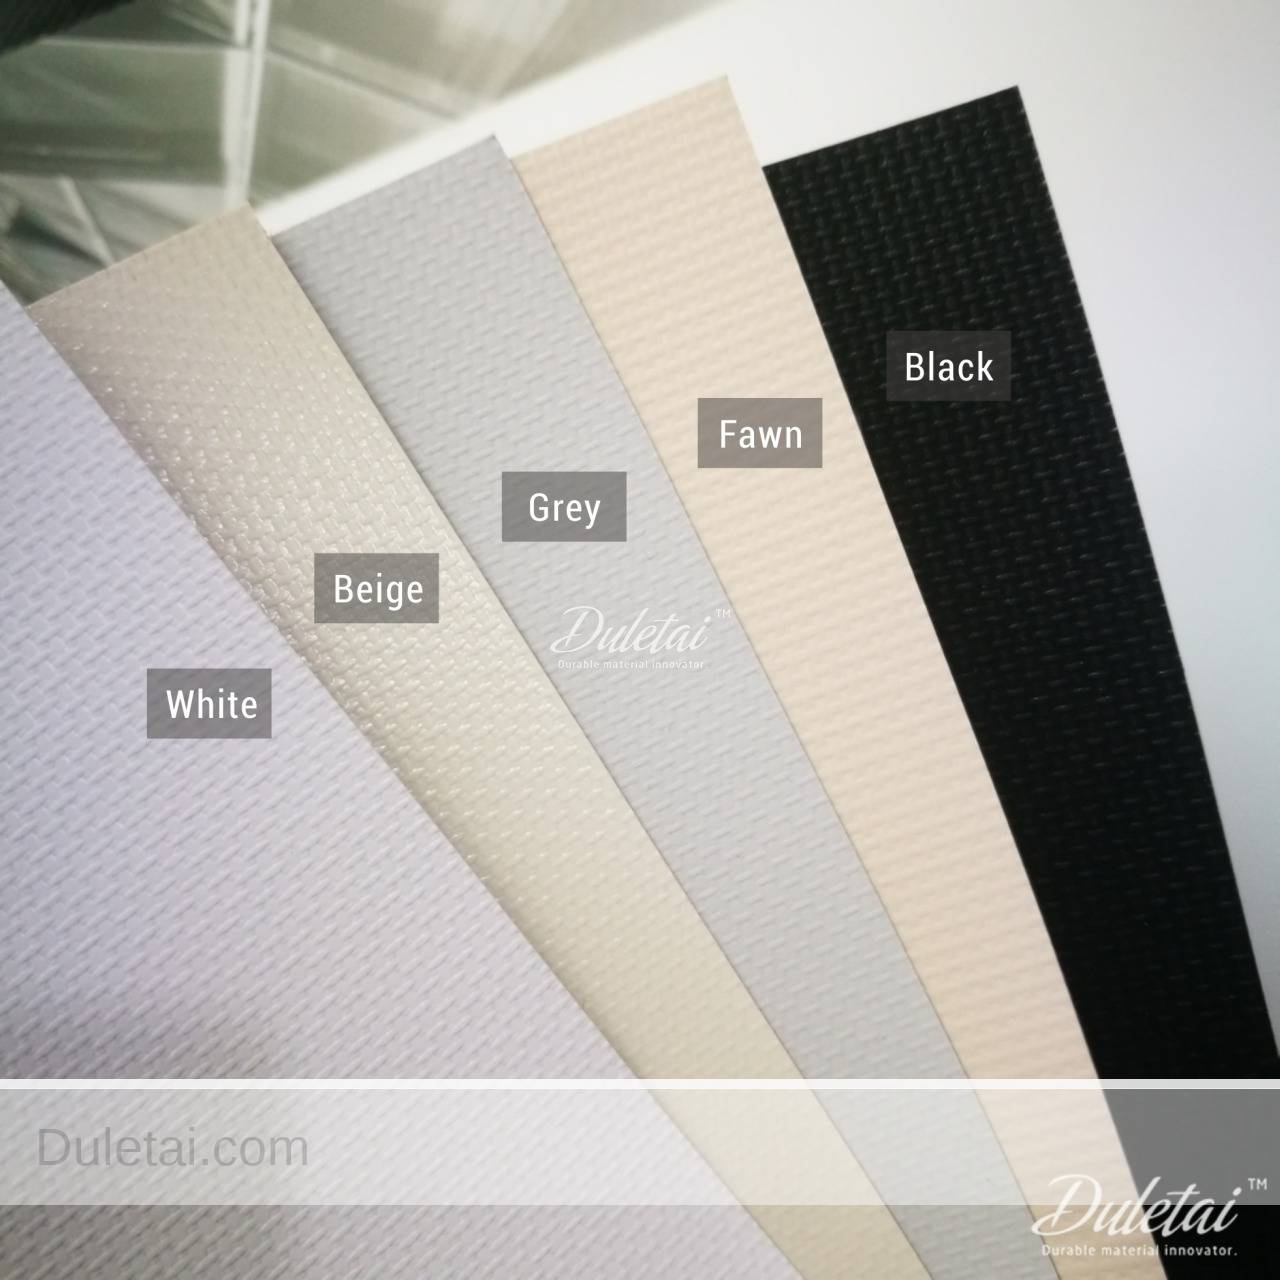 Fiberglass Blackout Blind Material For Window Shades